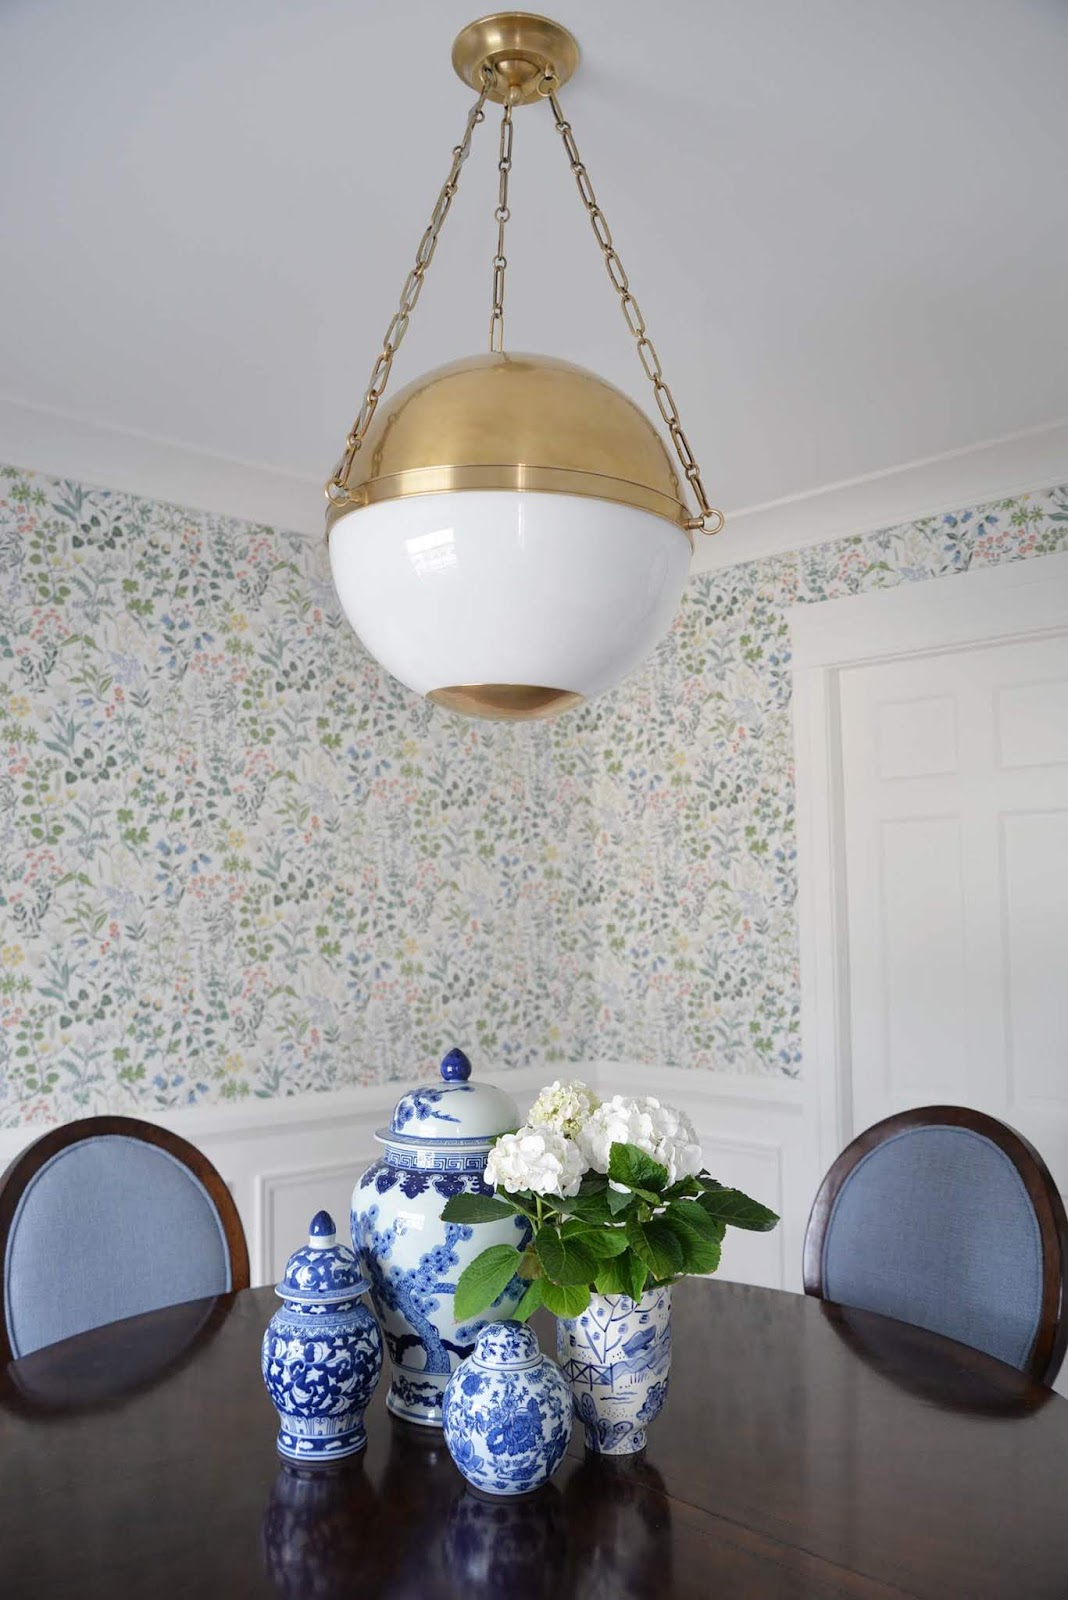 mark d sikes lighting for hudson valley lighting, Sphere No 2 pendant, new traditional chandelier, Borastapeter wallpaper